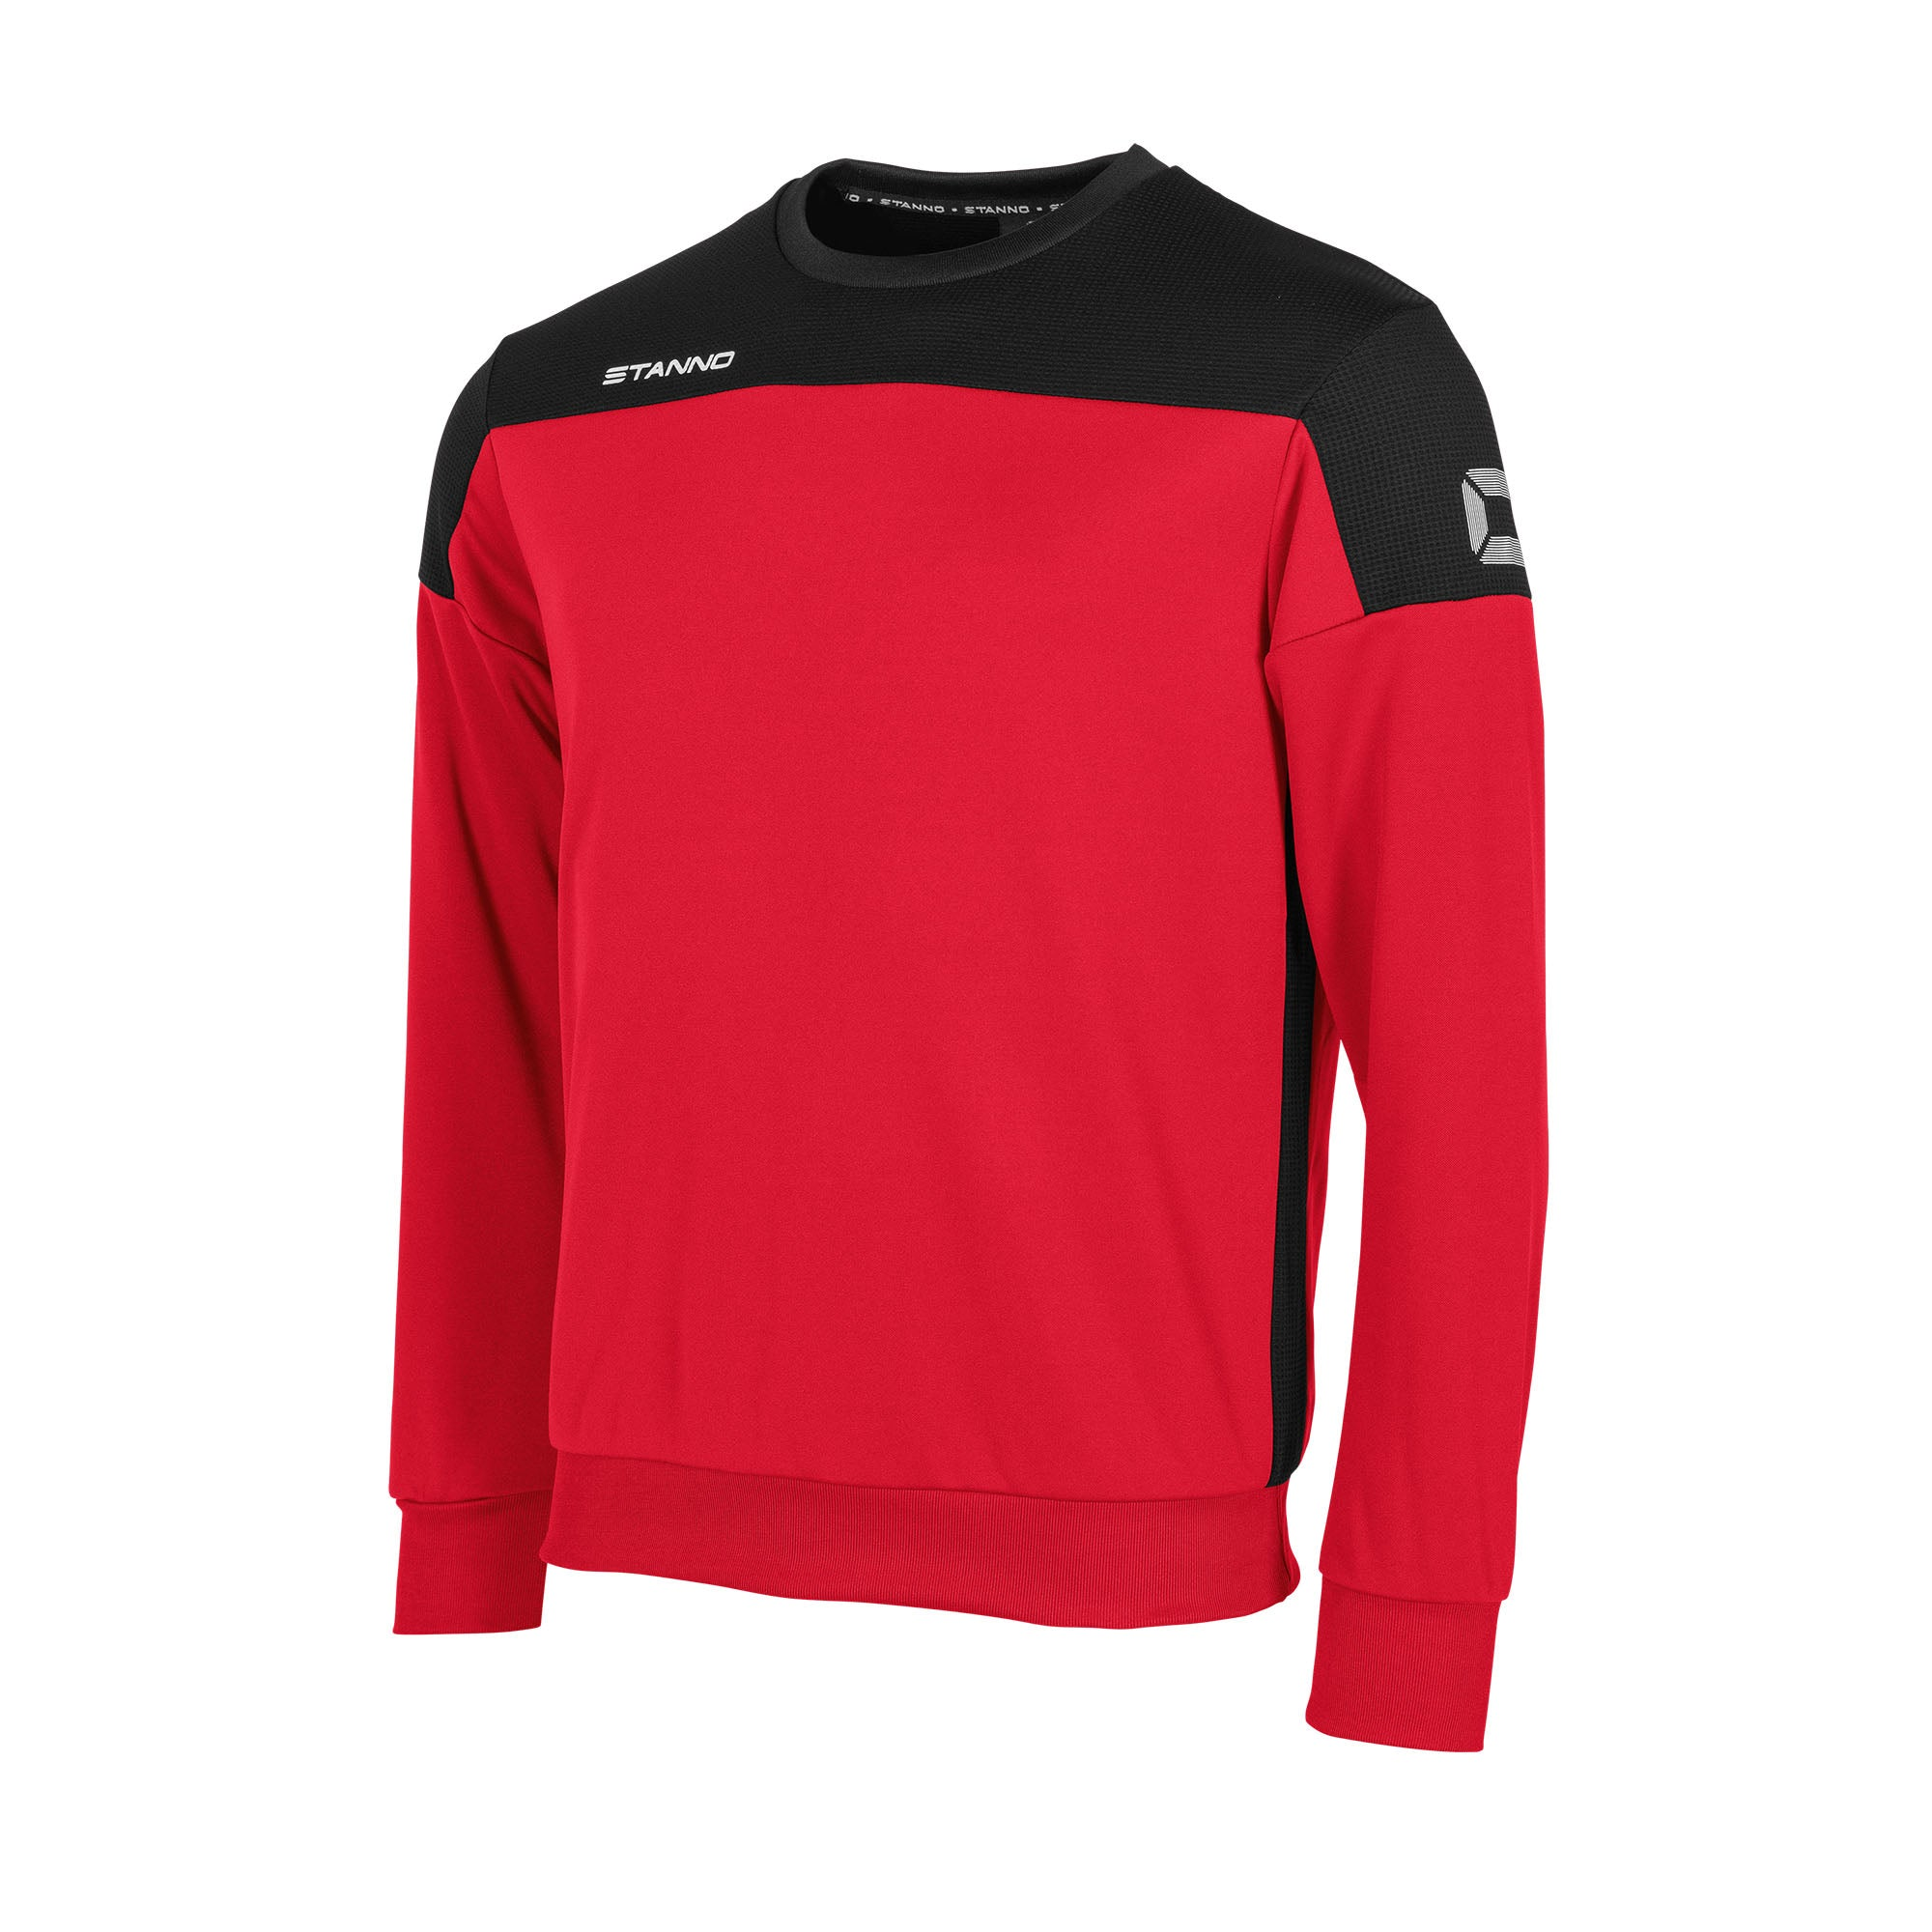 Stanno Pride round neck sweatshirt in red, with mesh contrast black shoulder and side panel